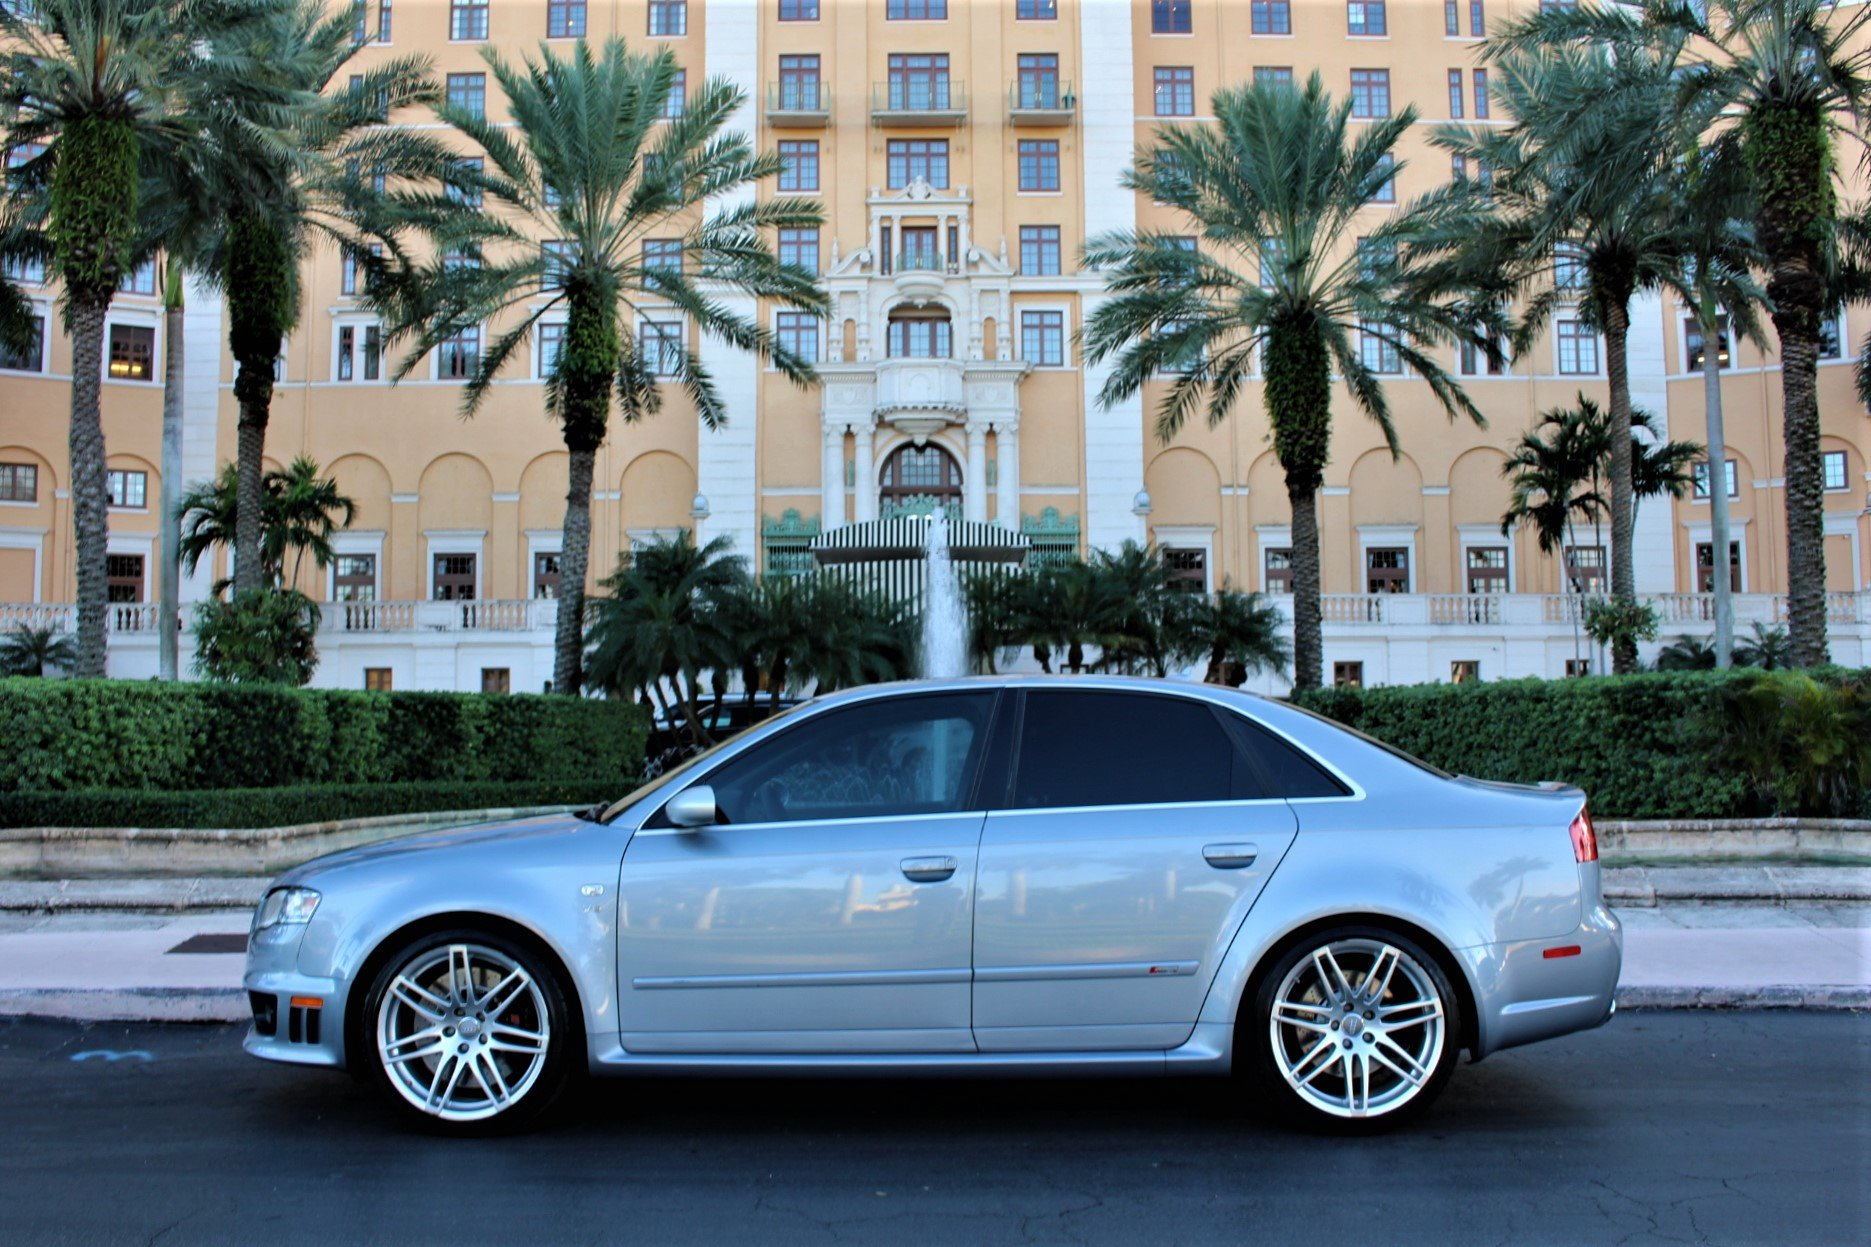 Used 2008 Audi RS 4 quattro for sale Sold at The Gables Sports Cars in Miami FL 33146 2